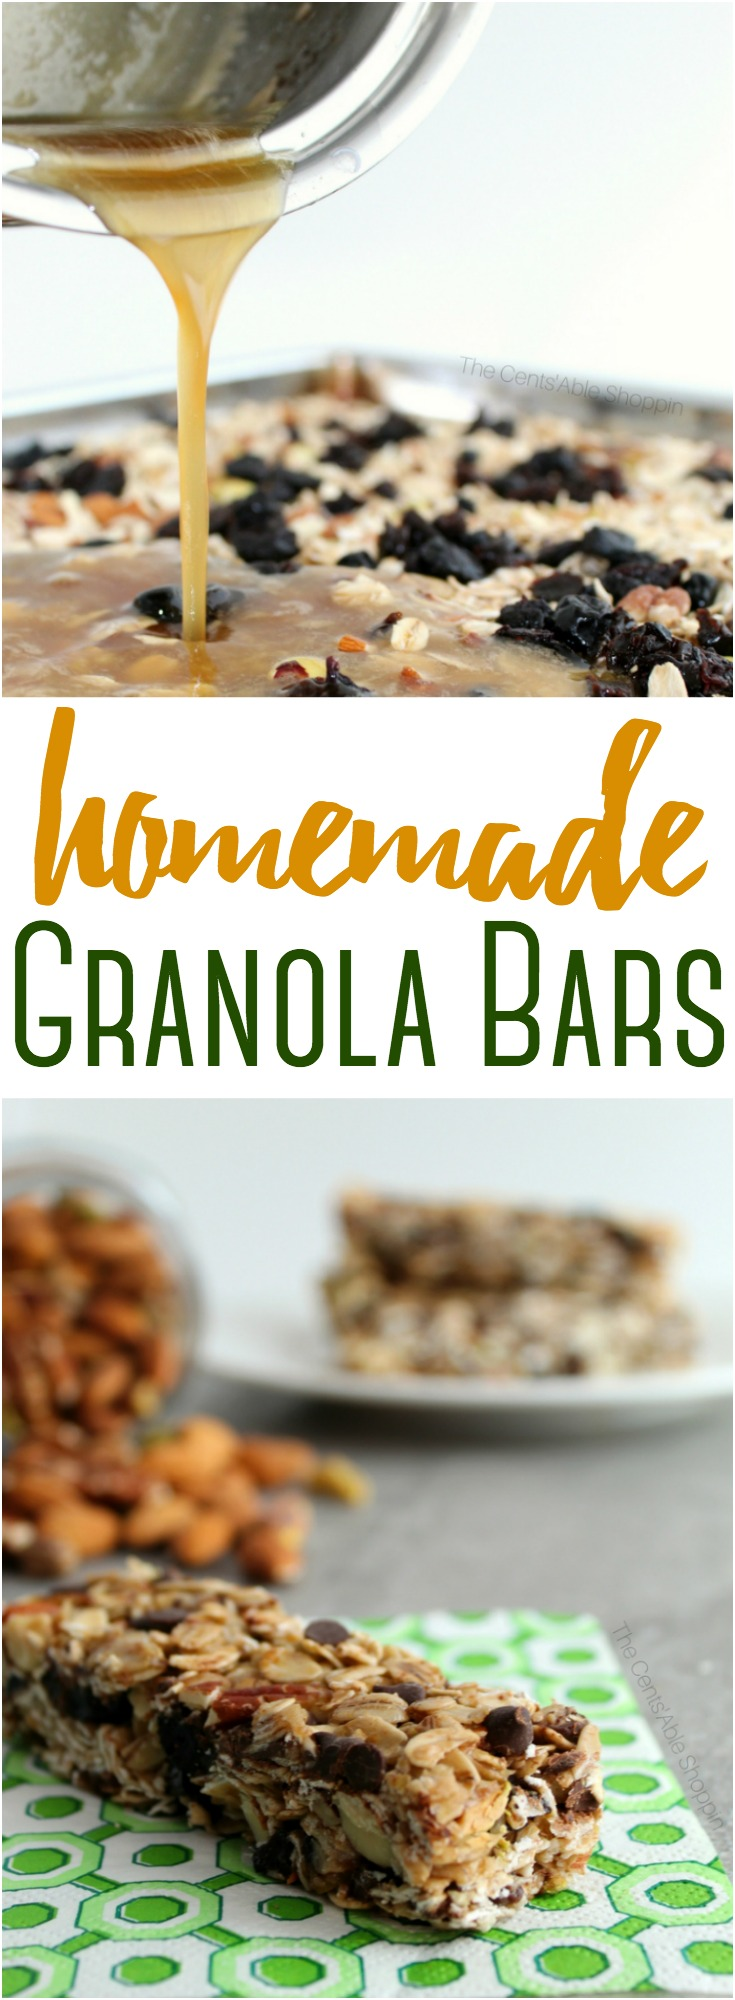 These homemade granola bars are delicious and healthier than any store bought variety. They are soft, chewy and unbelievably adaptable using your favorite mix-ins! #granolabars #homemade #healthysnack #kids #lunchbox #healthy